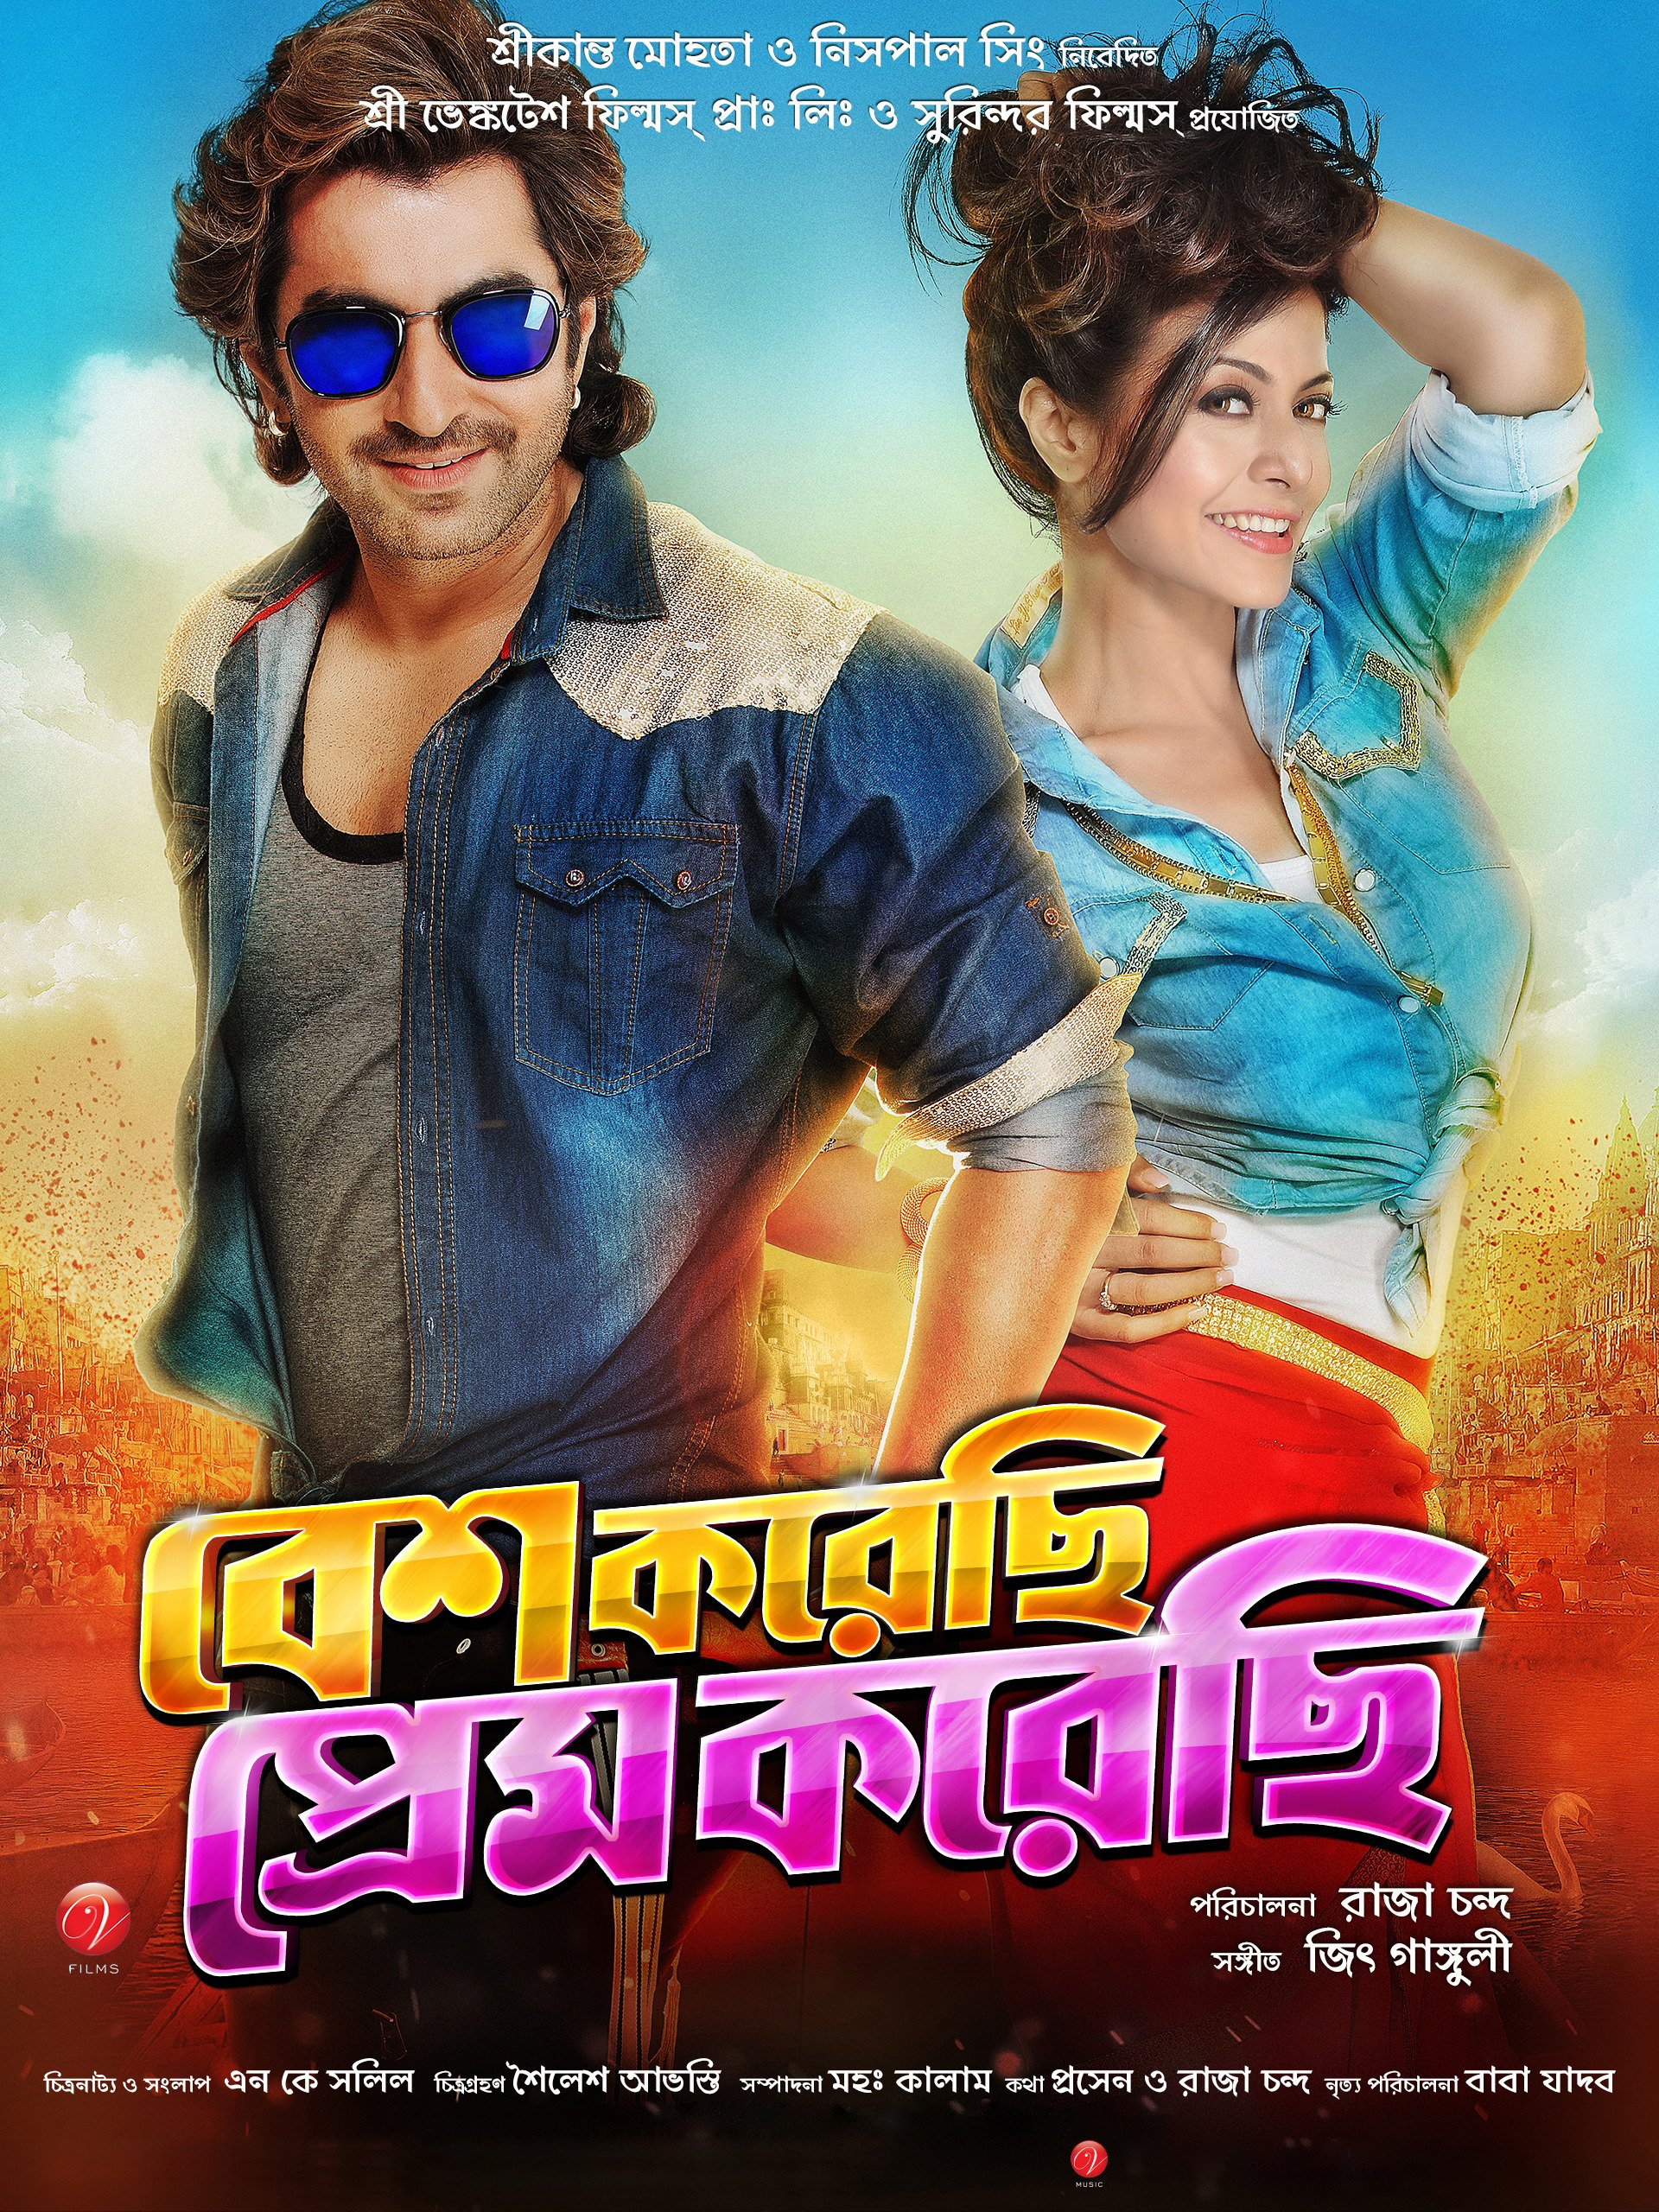 Besh Korechi Prem Korechi (2015) Bengali Movie 720p HDRip AAC